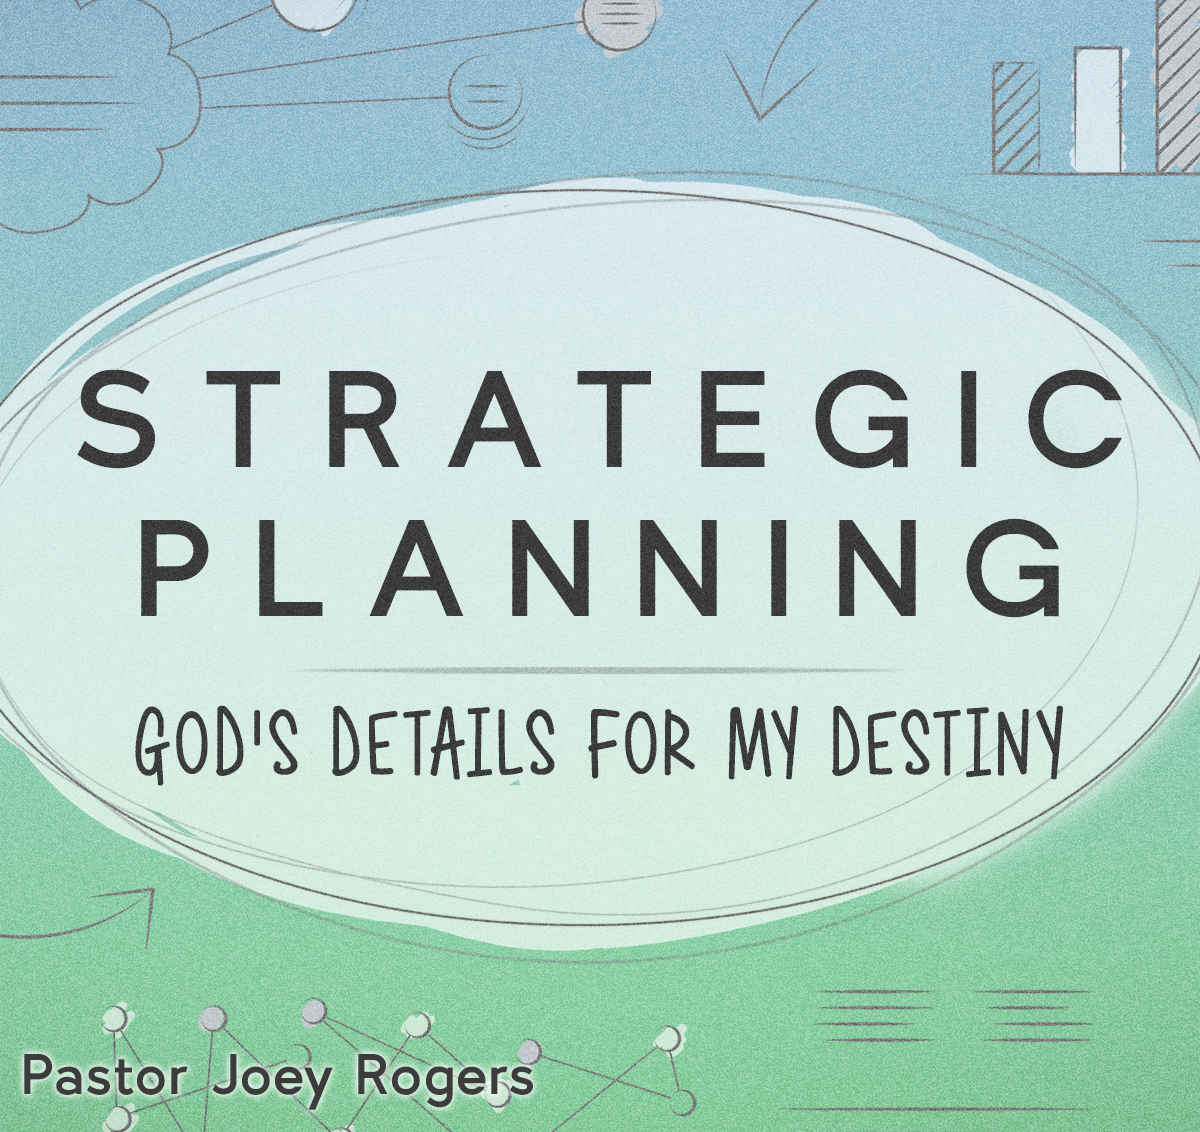 Strategic Planning Pt. 3 - Stay With The Plan